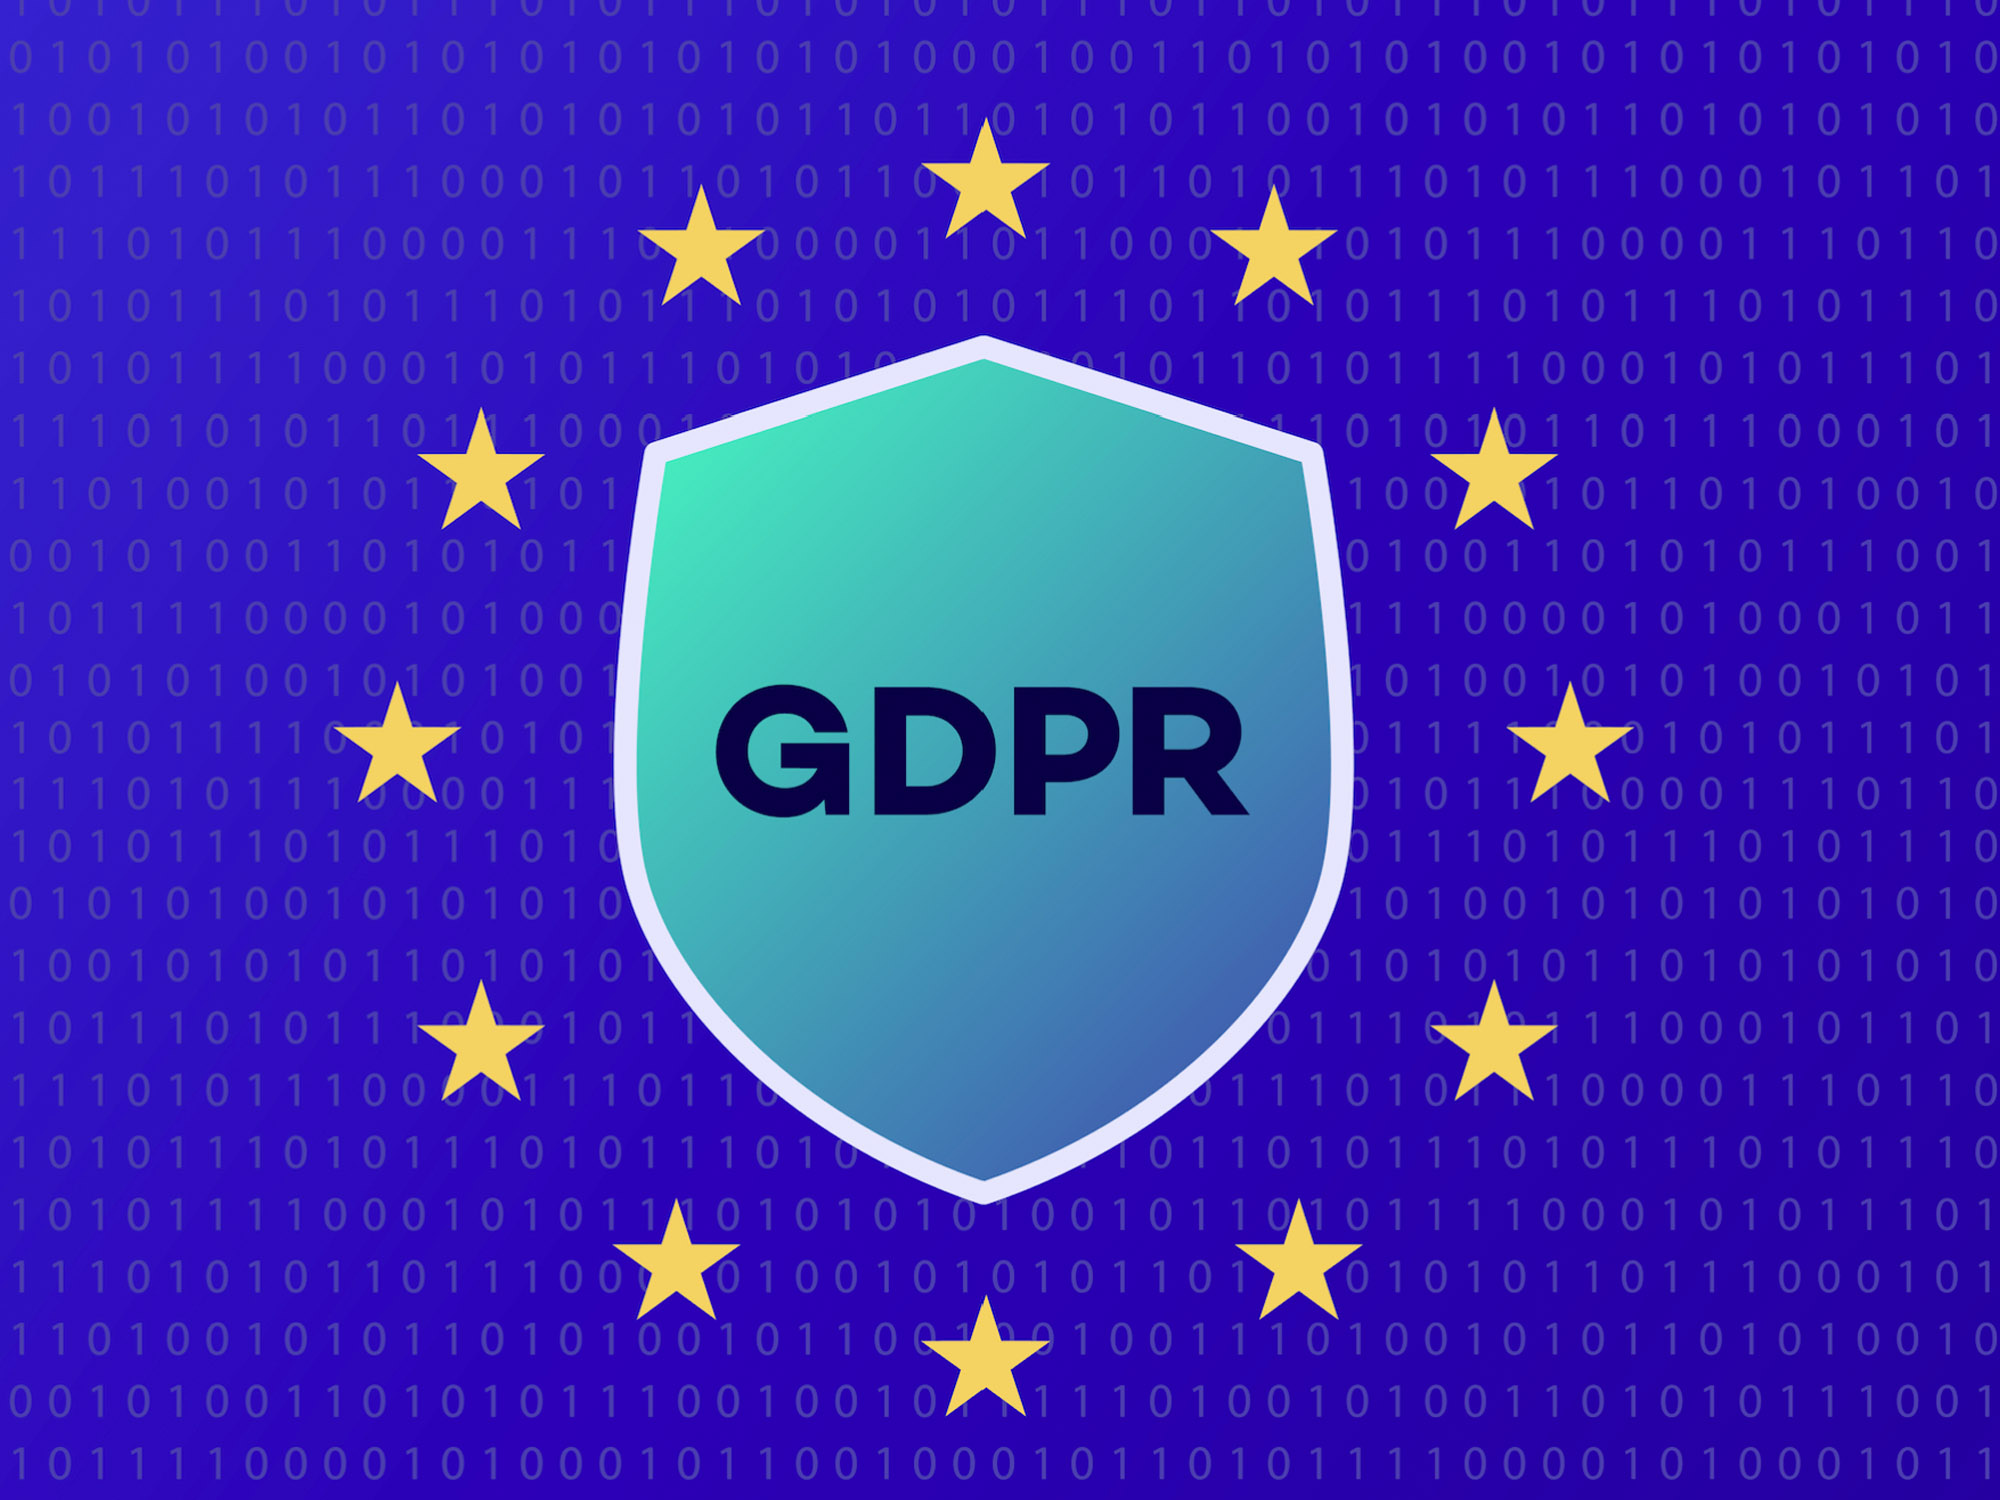 ShareThis and GDPR